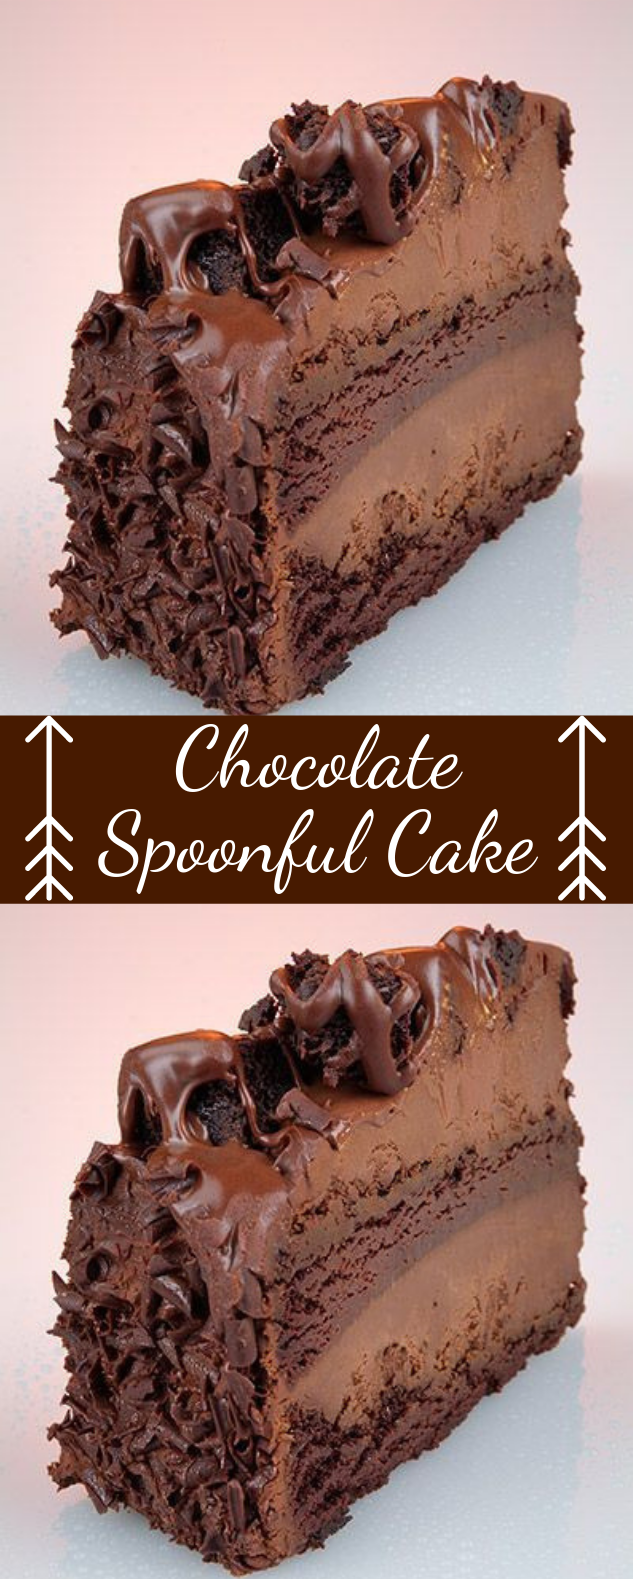 Chocolate Spoonful Cake #dessert #chocolate